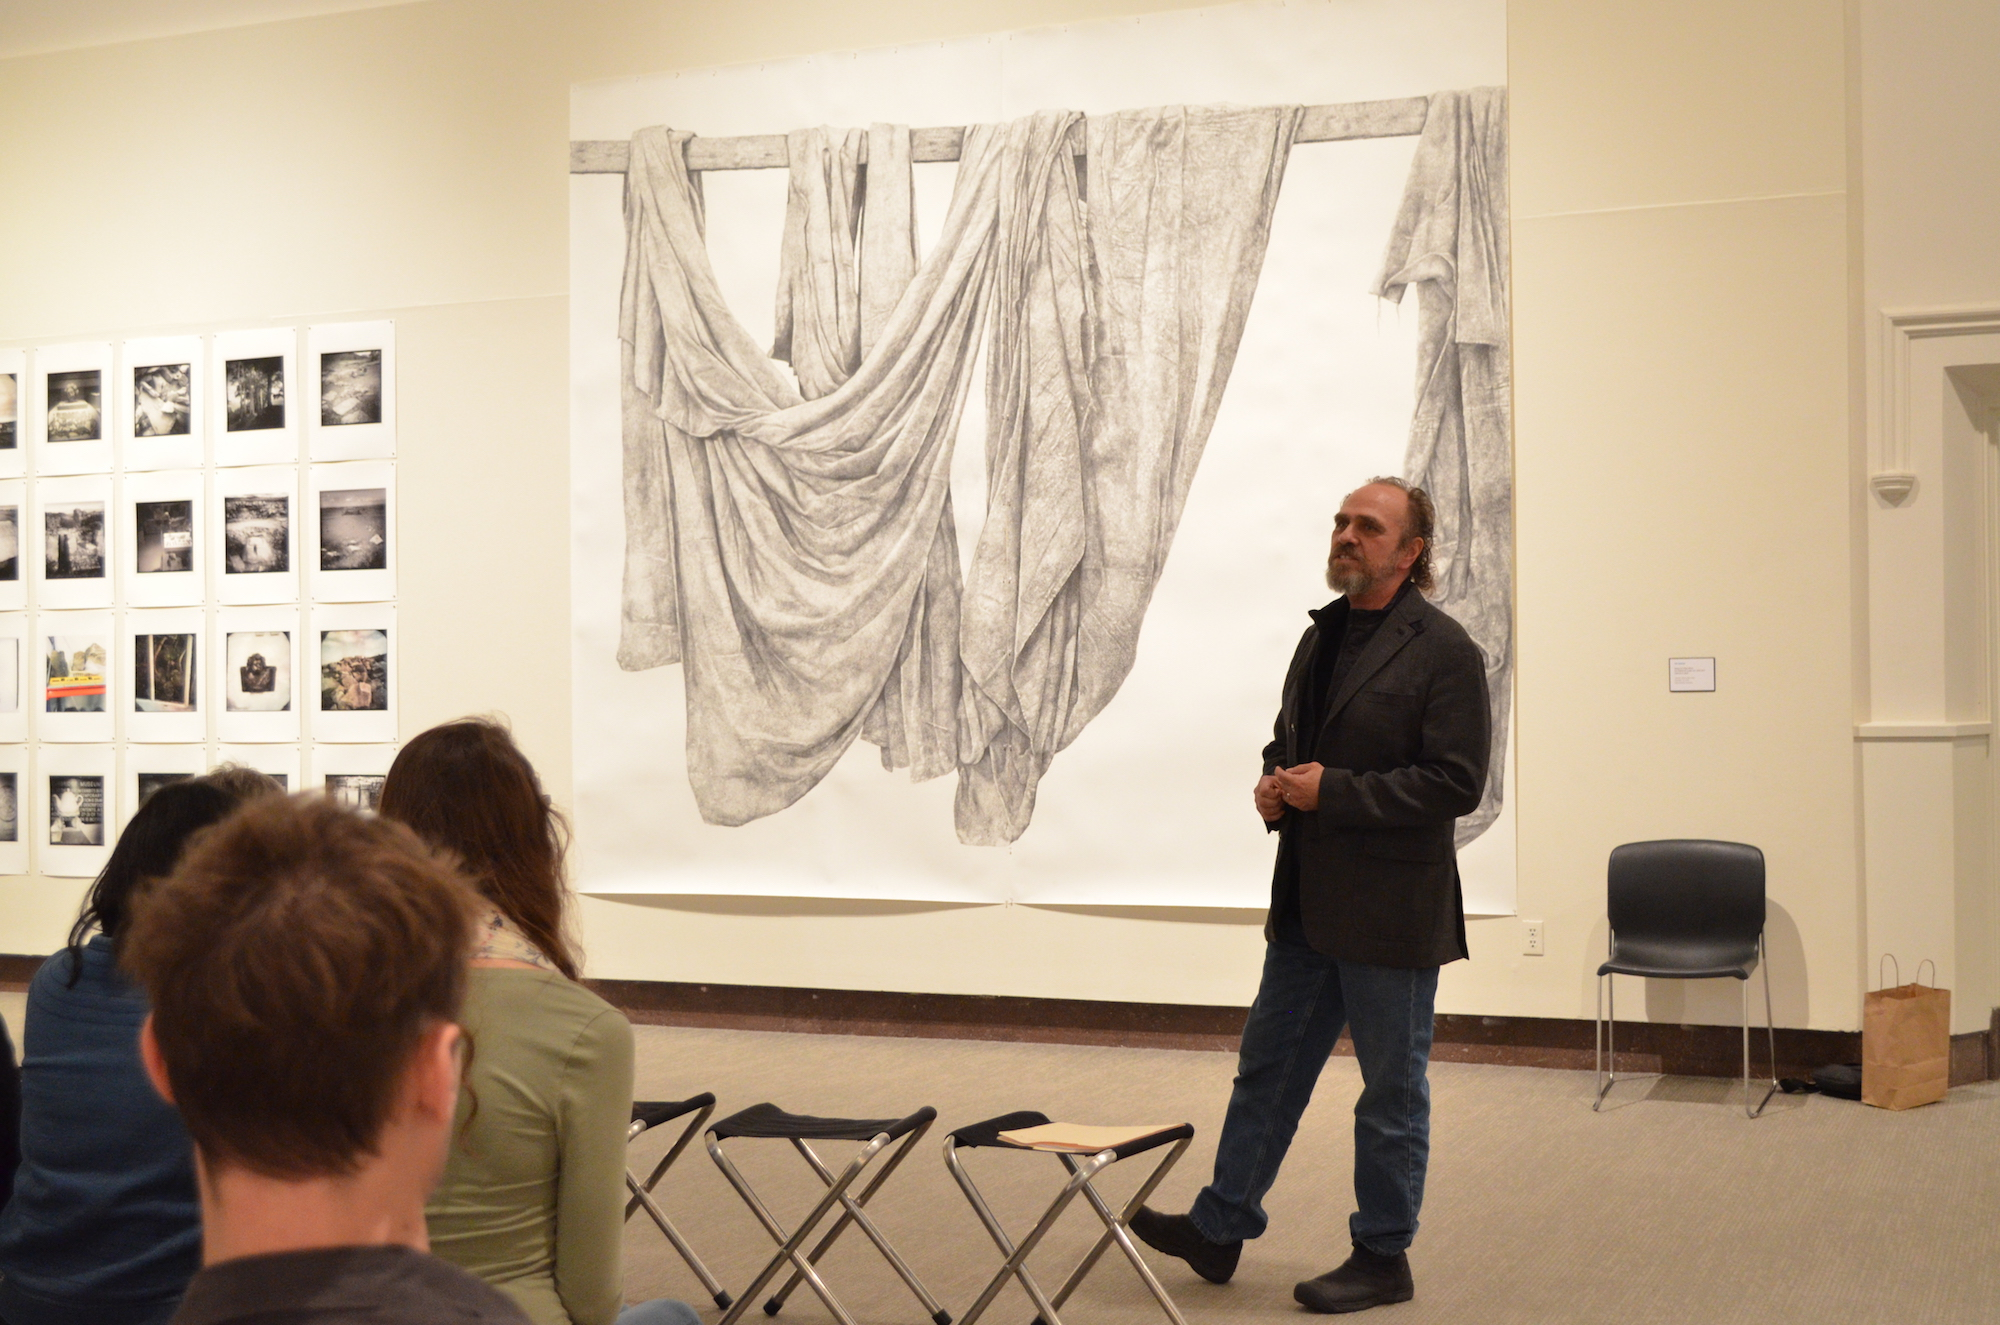 UConn Associate Professor of Sculpture and Drawing Ray DiCapura presents a background of one of his pieces and answers questions from the audience at the Benton on Wednesday, February 8. DiCapura is a two-time McDowell Colony resident and has exhibited his works at the Smithsonian in Washington, DC. (Akshara Thejawsi/The Daily Campus)